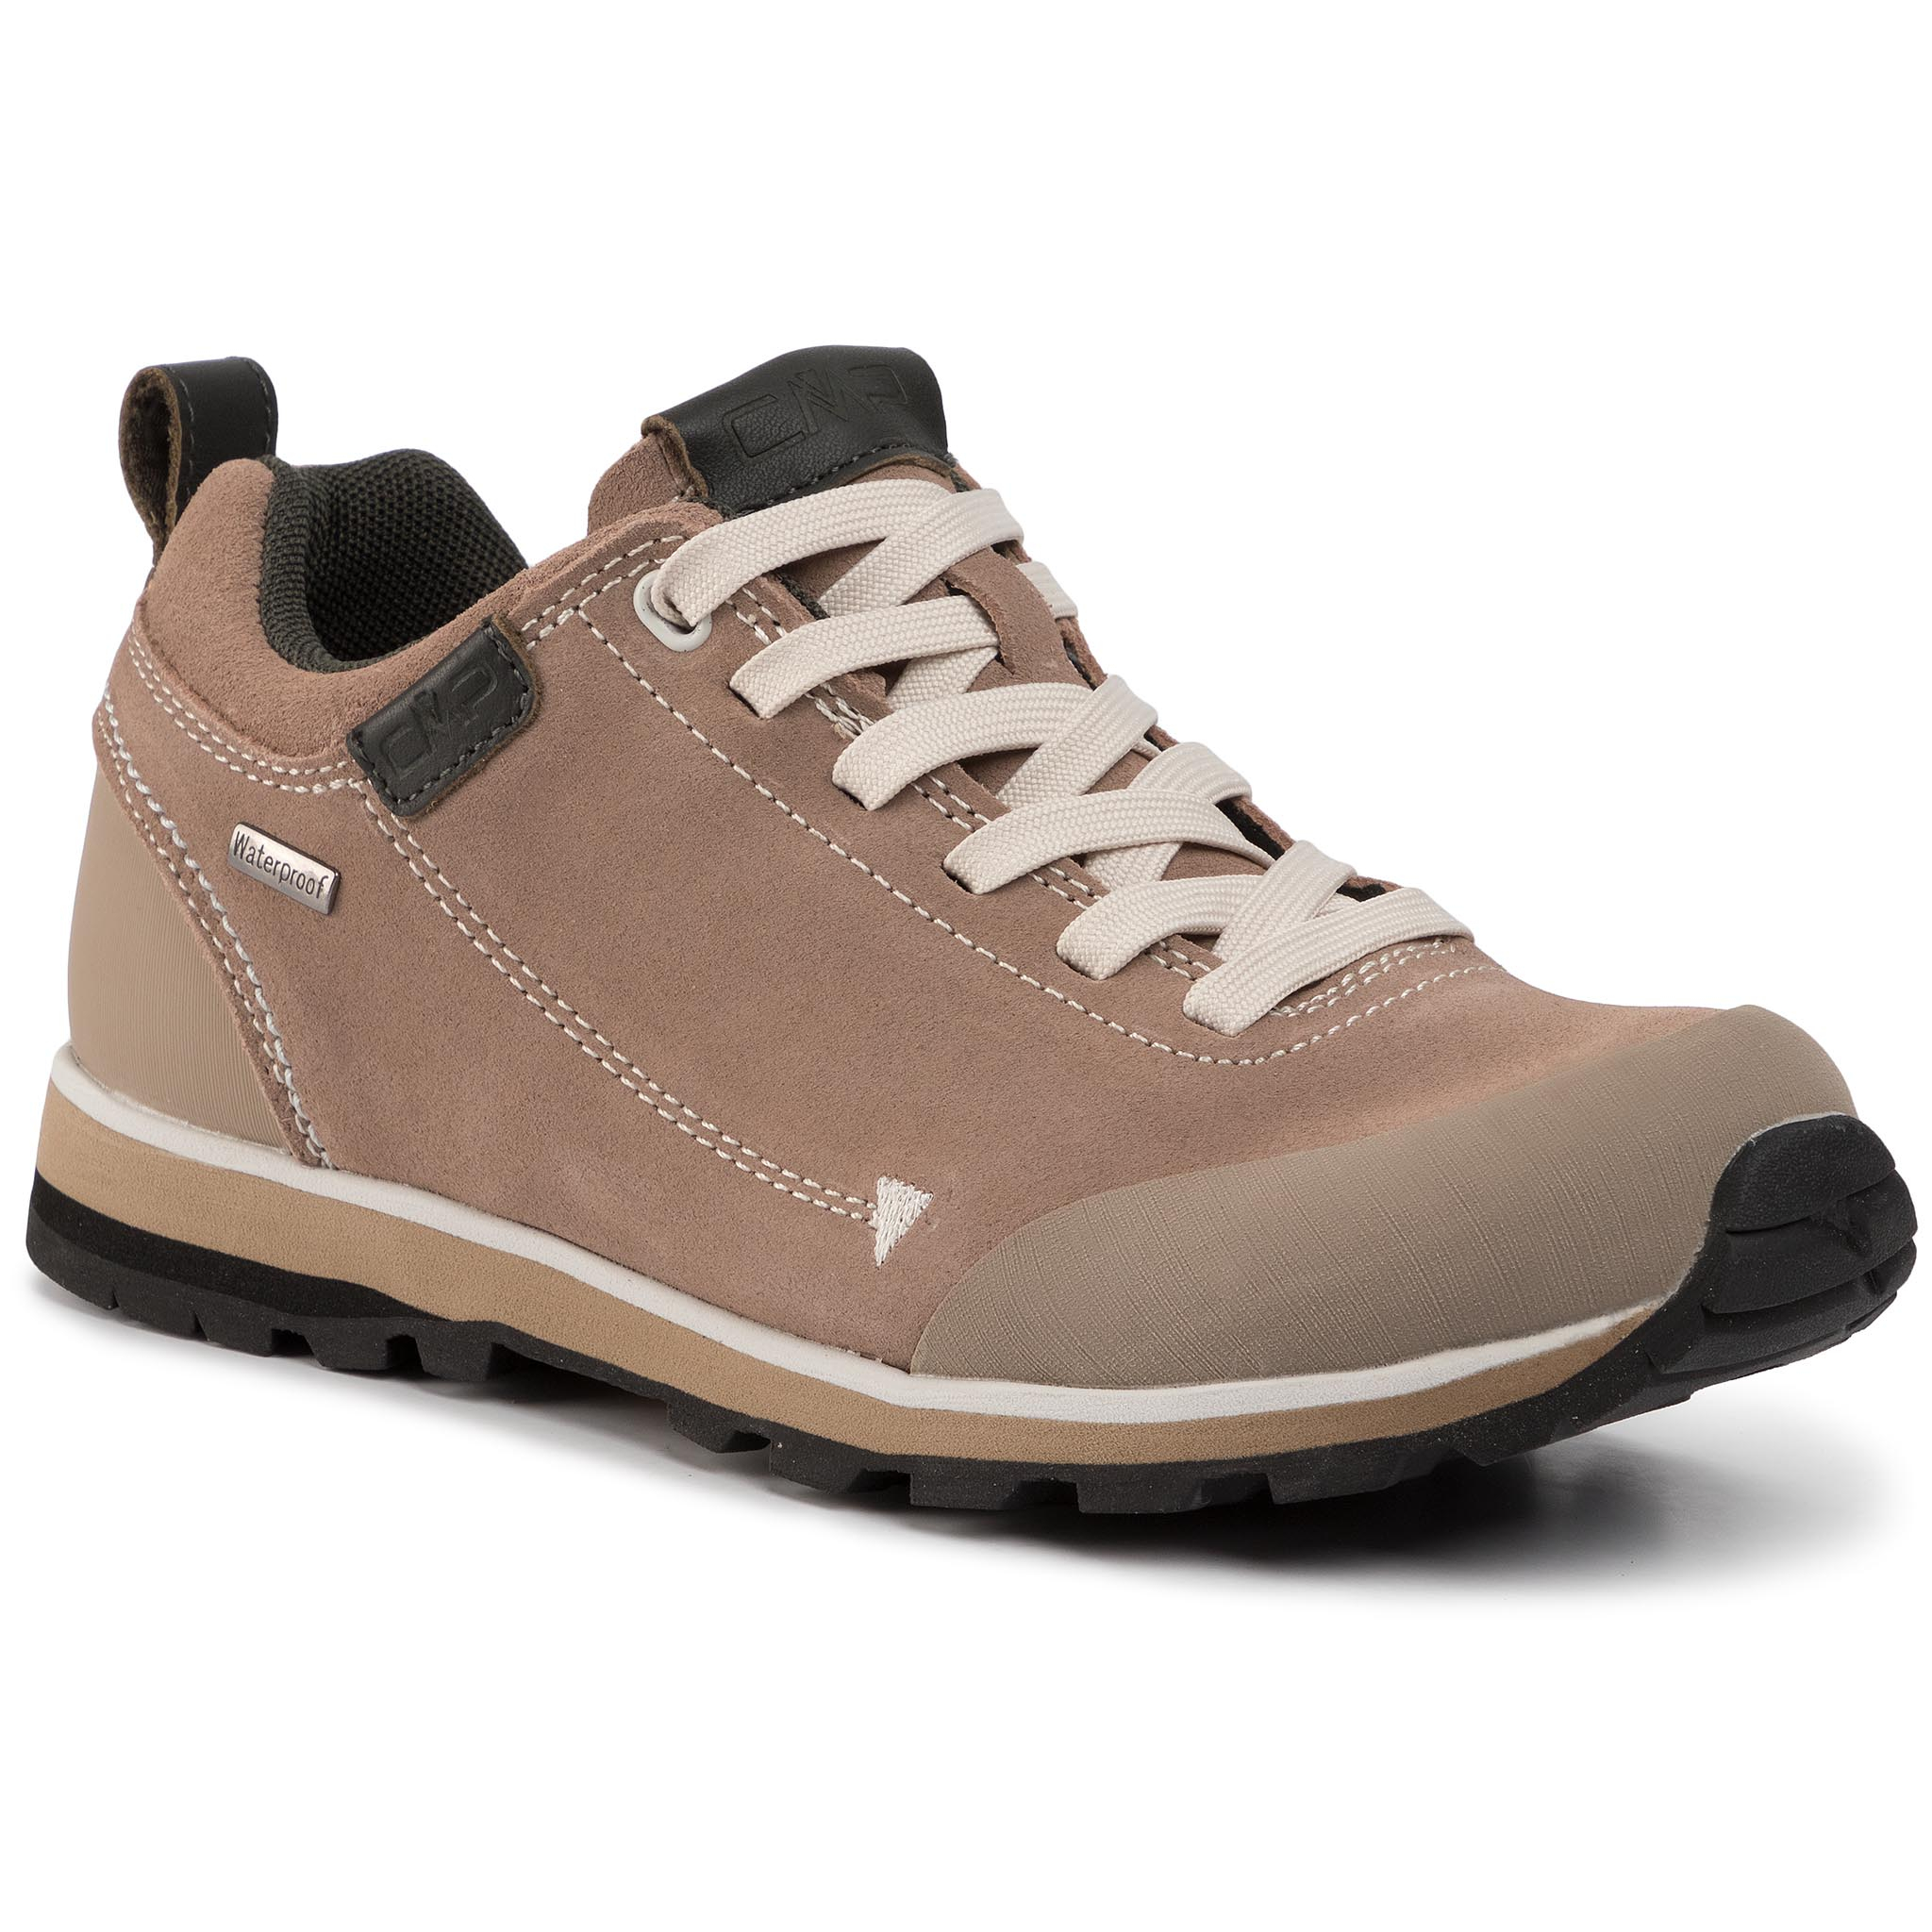 Turistiniai batai CMP - Elettra Low Hiking Shoe Wp 38Q4616 Desert P613